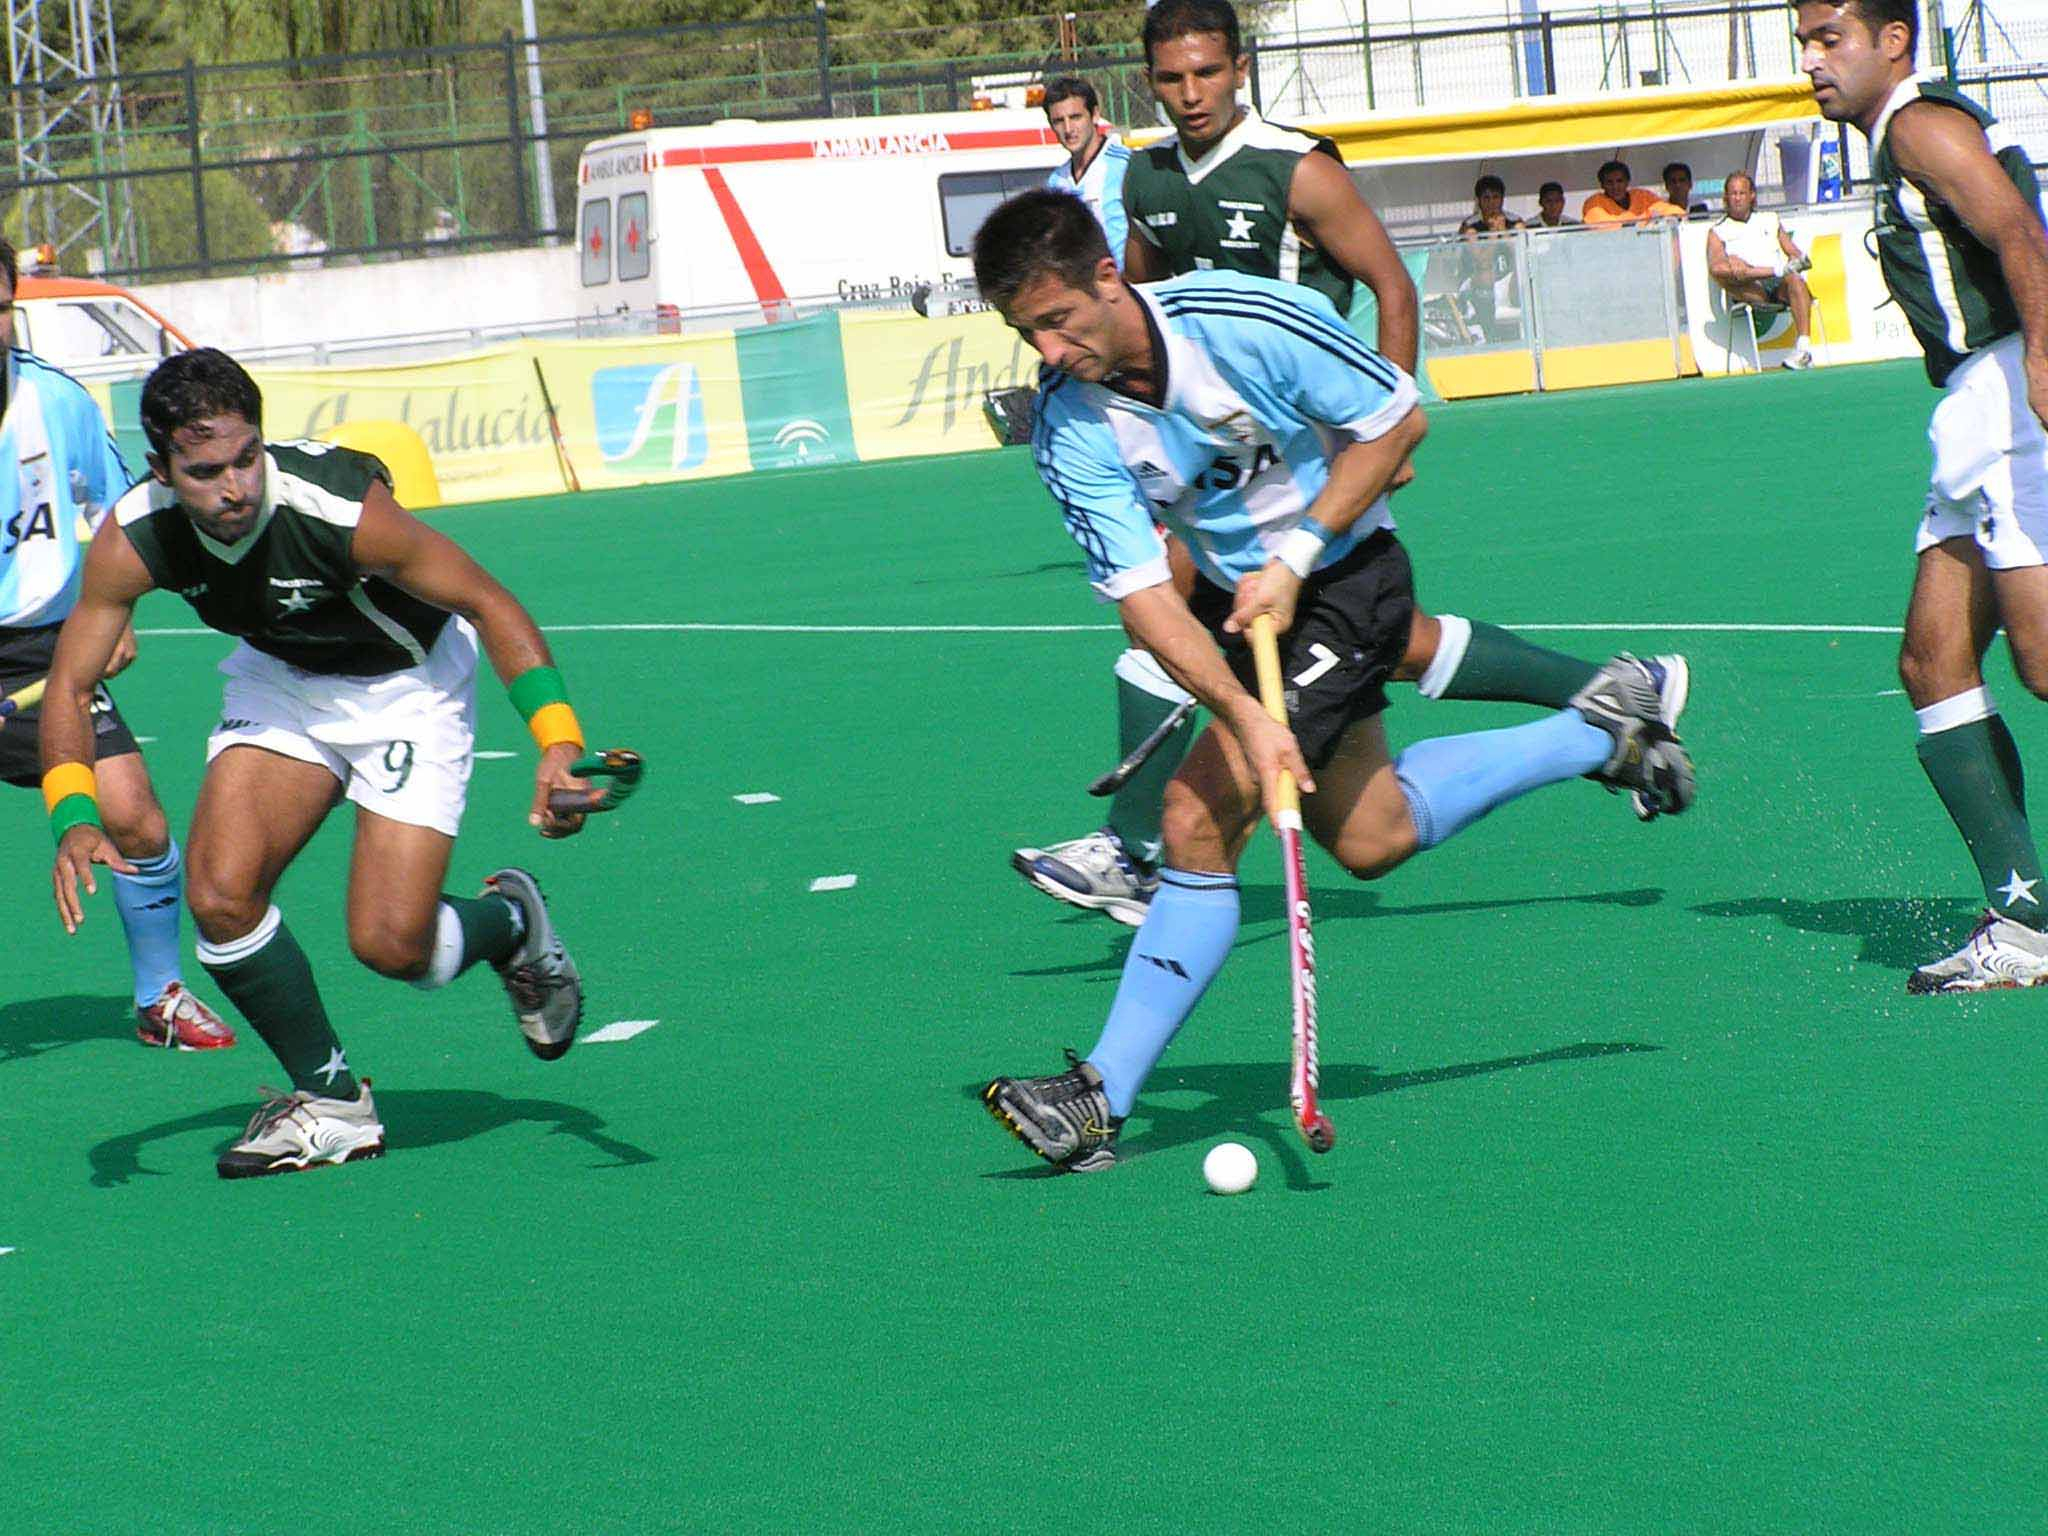 Description HOCKEY ARGENTINA PAKISTAN.jpg